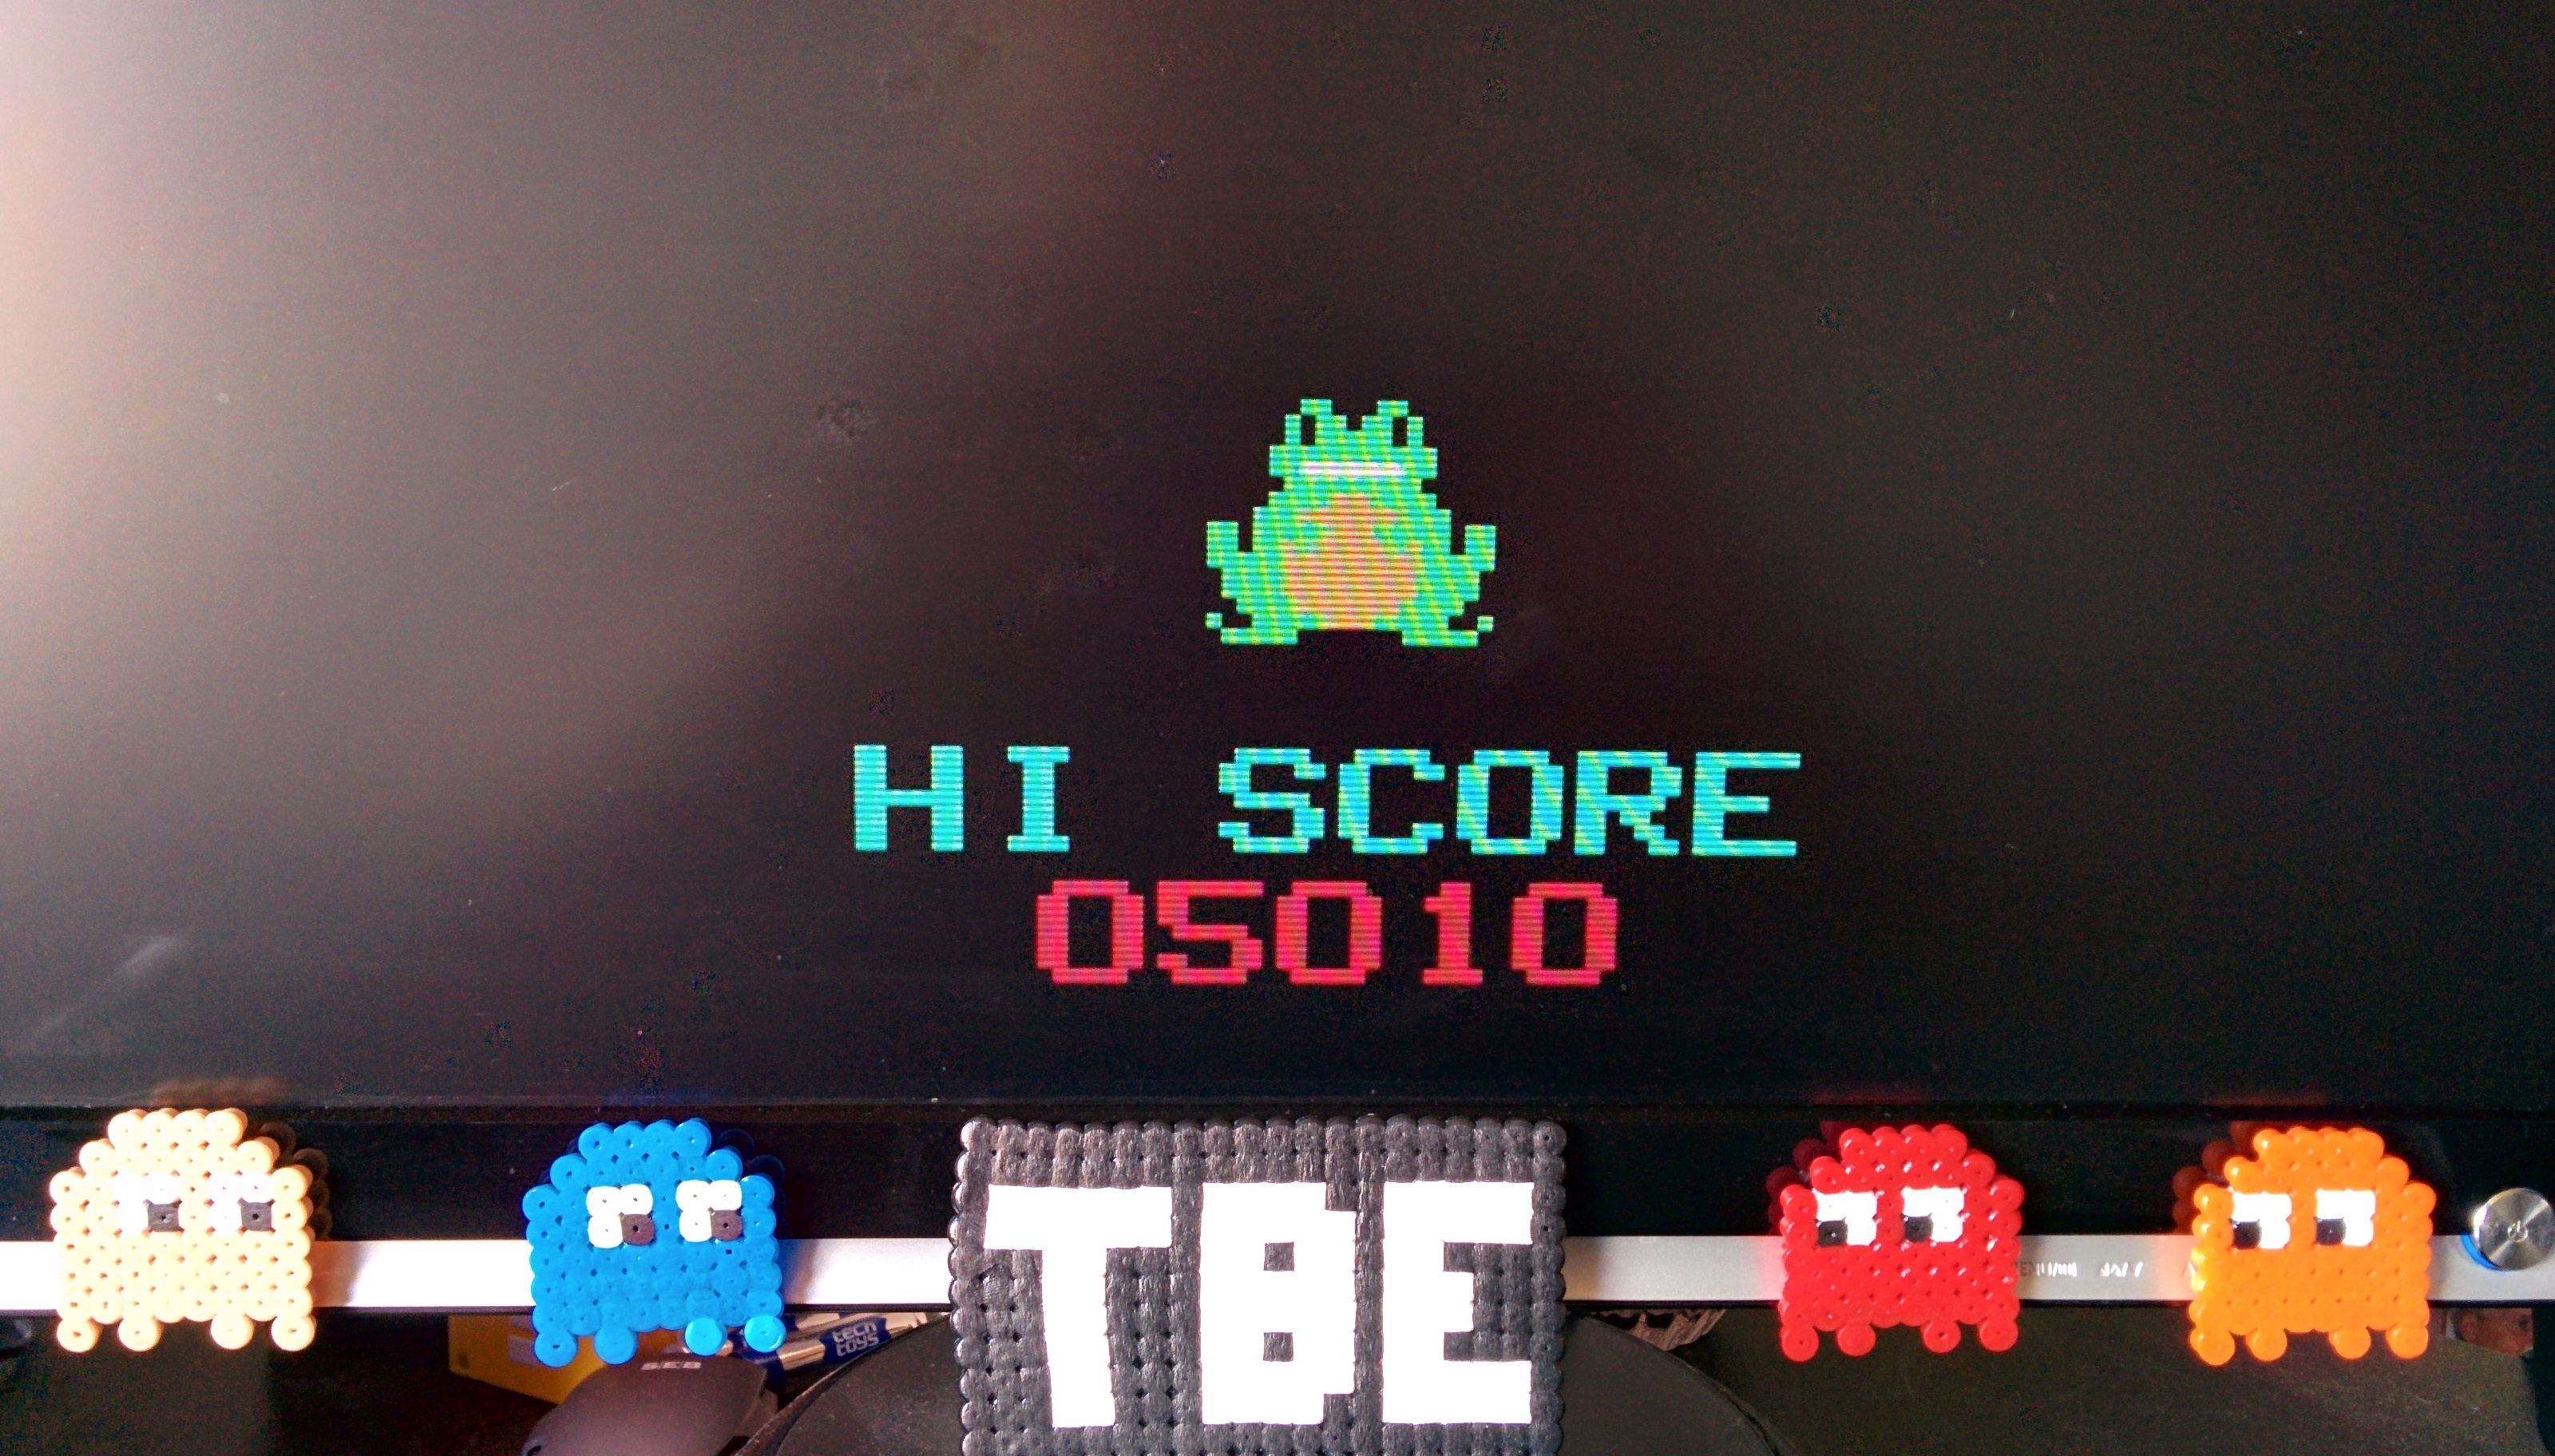 Sixx: Frogger (Odyssey 2 / Videopac Emulated) 5,010 points on 2014-08-26 05:41:05